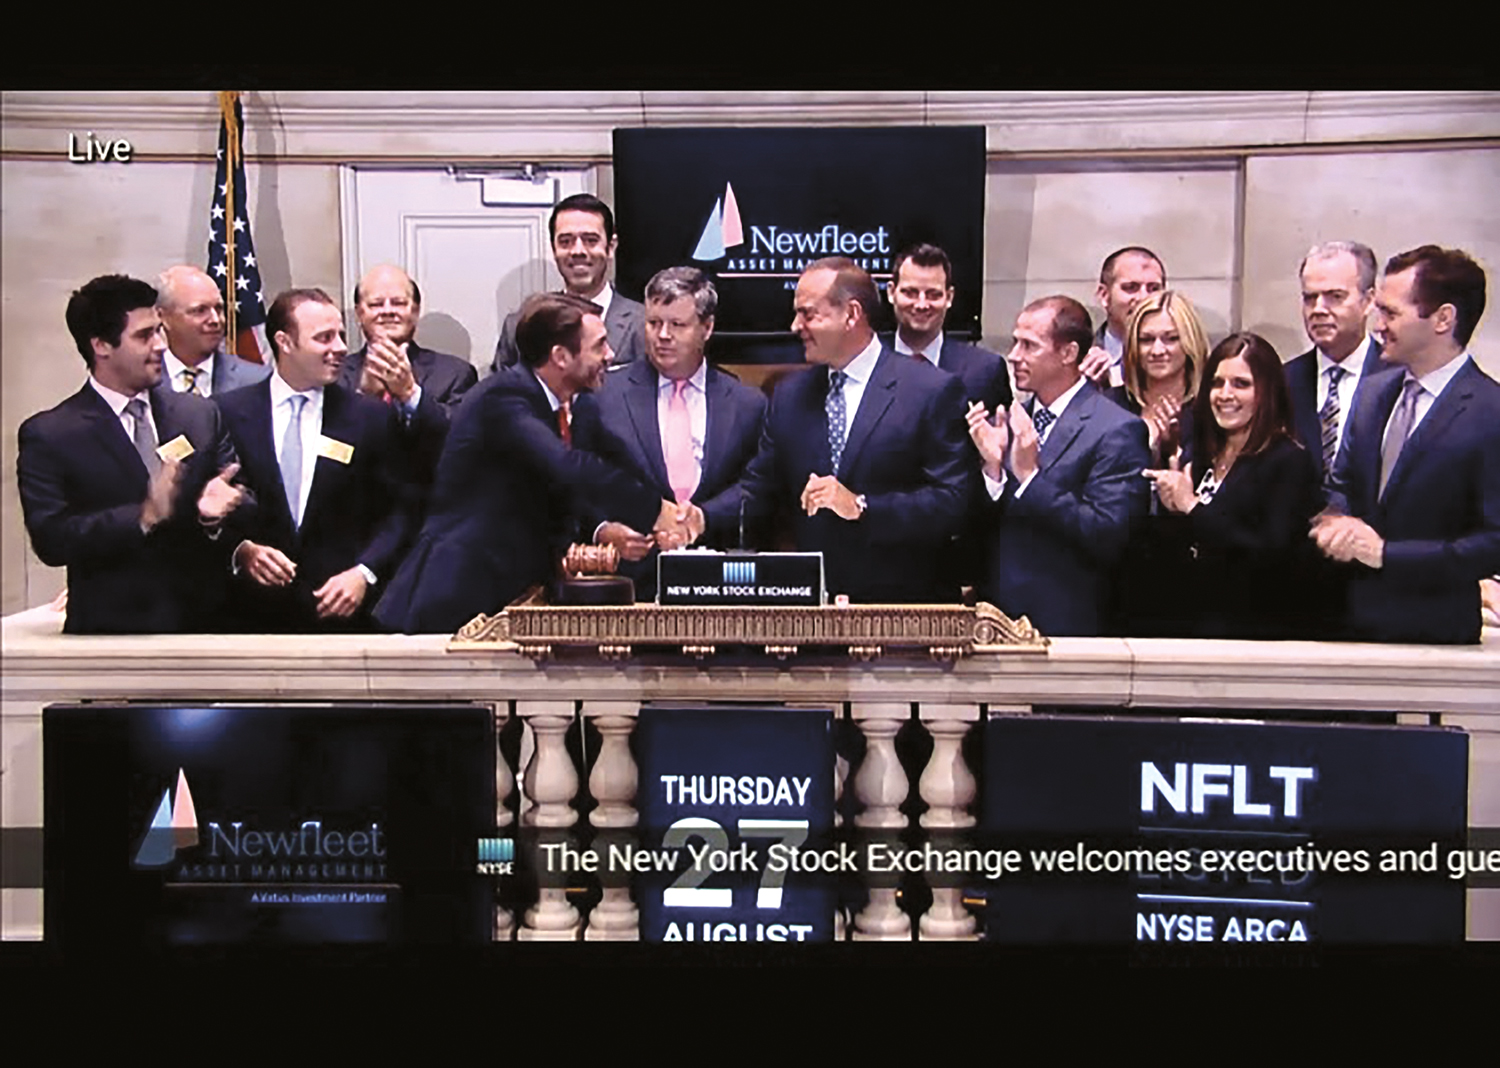 Paul Roberts, fourth from left, founder of Roberts Wealth Management in League City, claps as the bell rings on the New York Stock Exchange. His business was recently featured in Forbes Magazine.